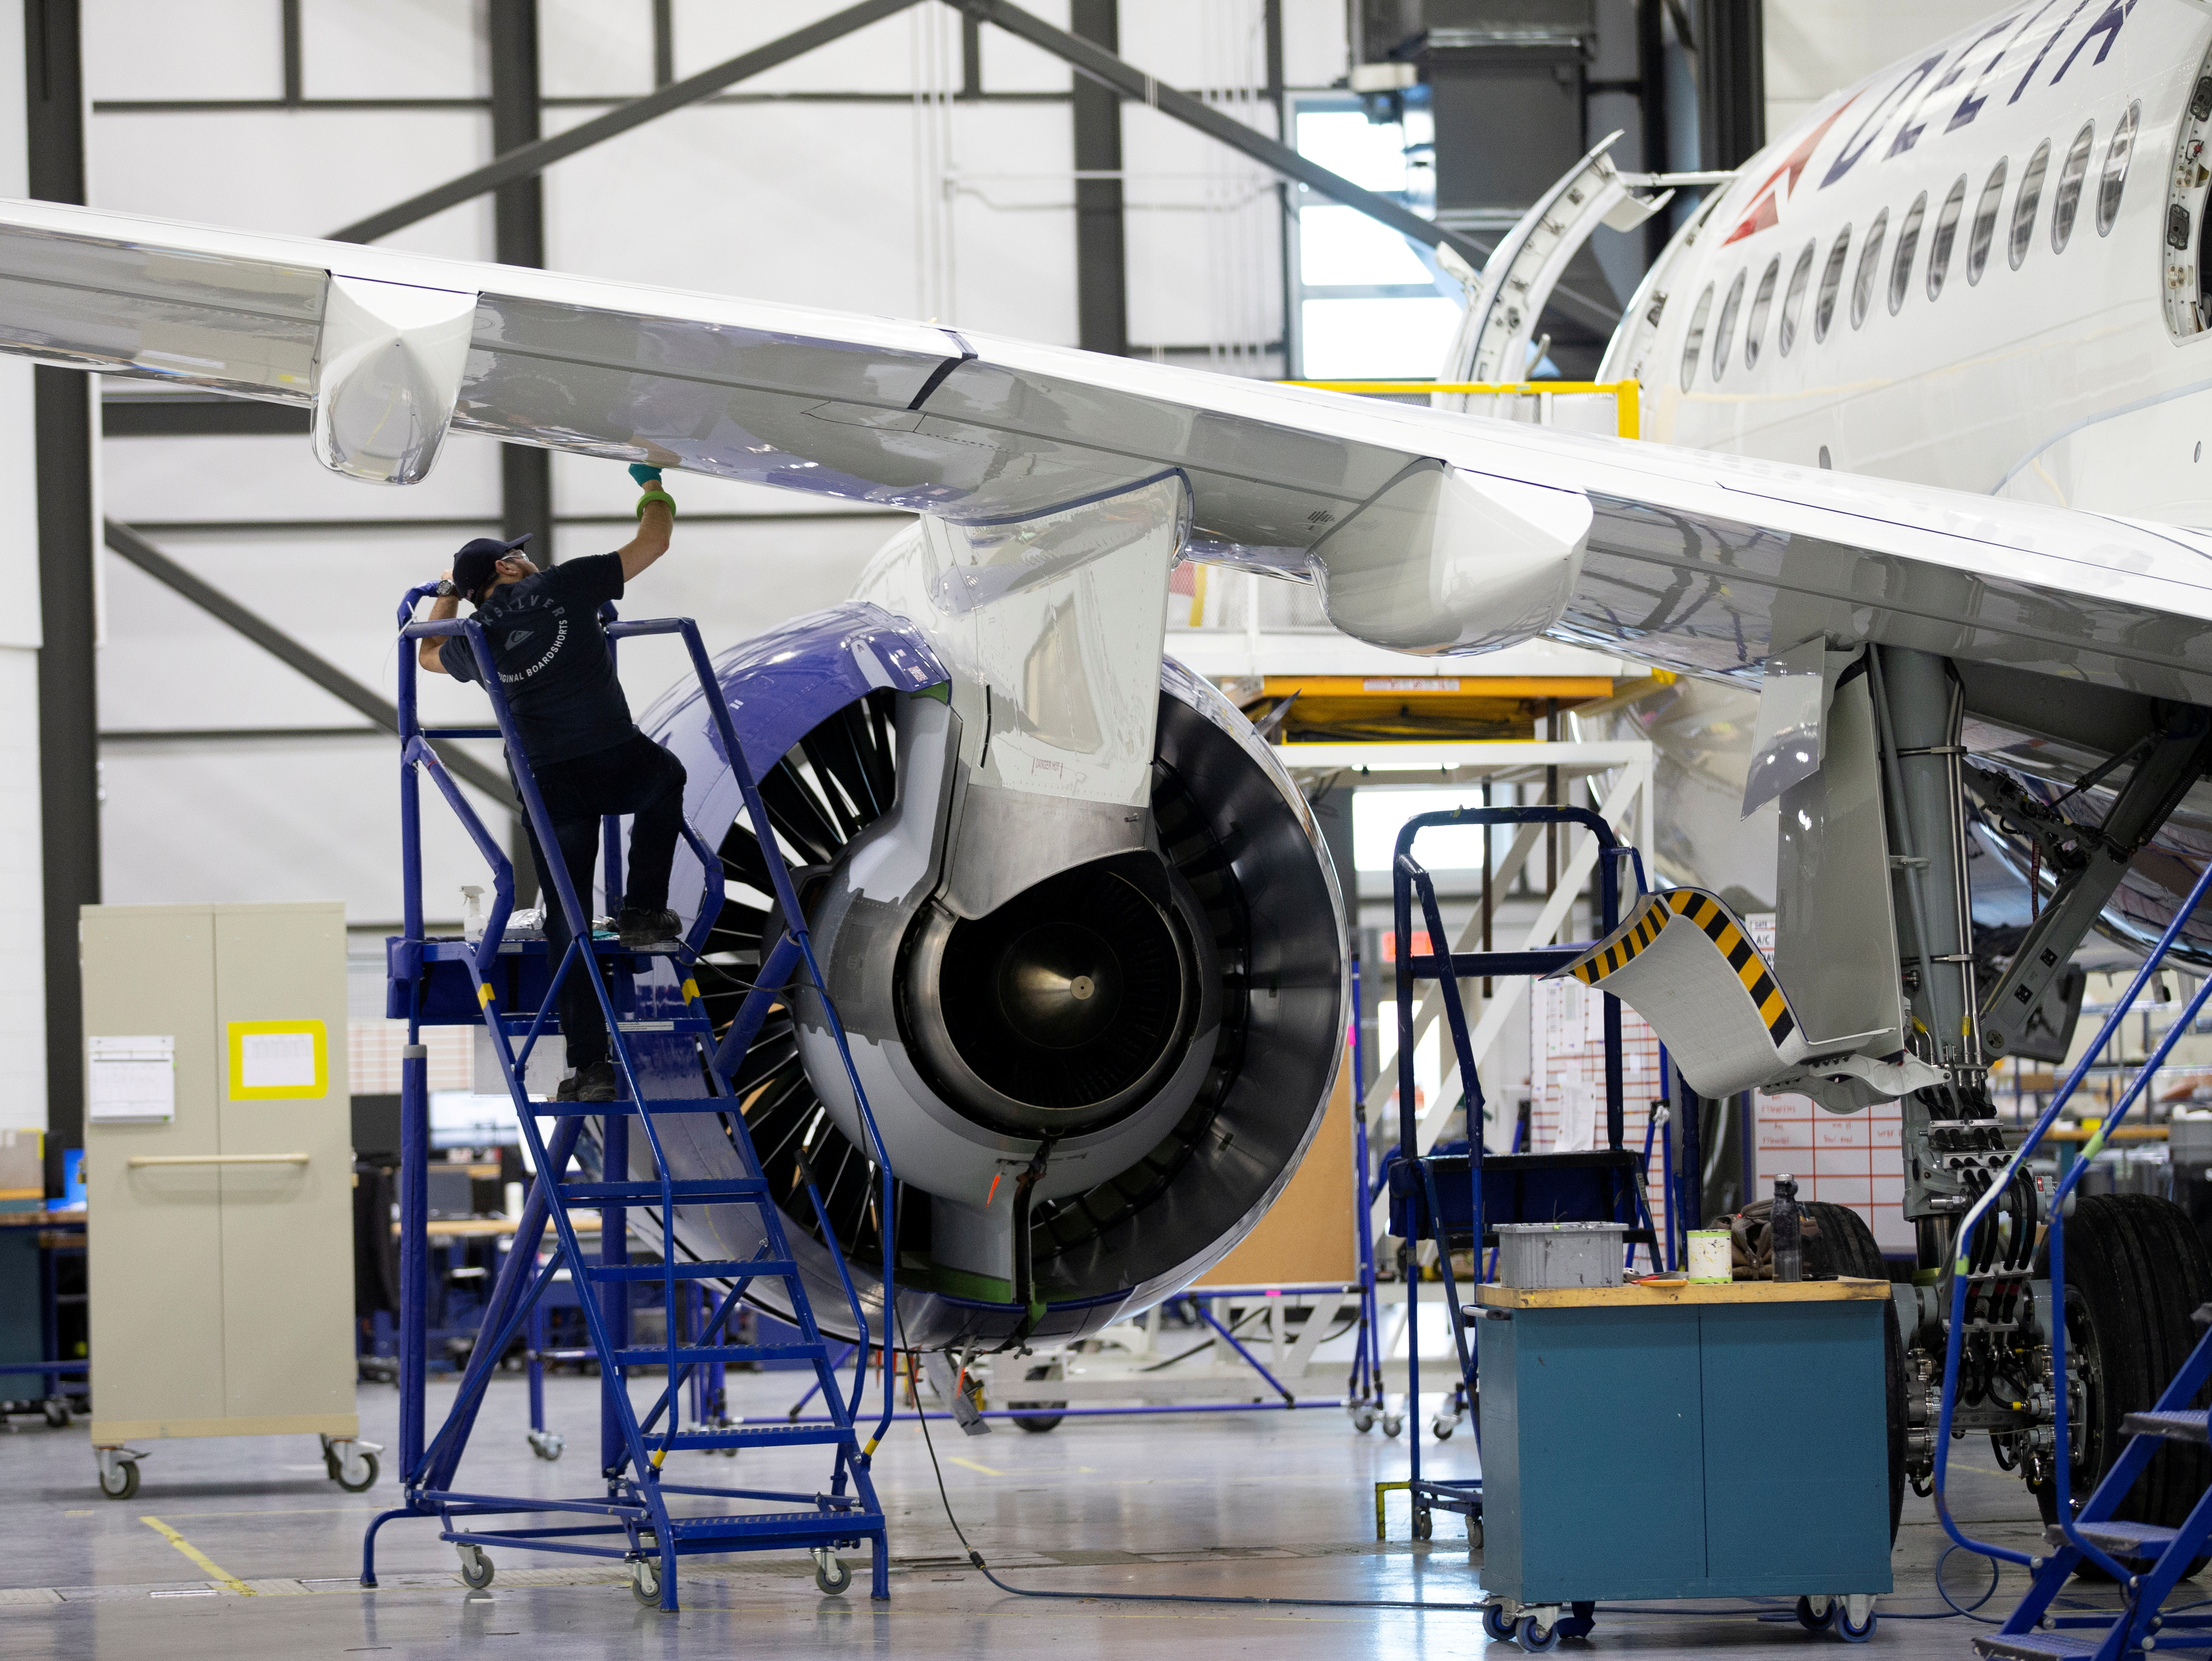 An employee works on an Airbus A220-300 at the Airbus facility in Mirabel, Quebec, Canada February 20, 2020.  REUTERS/Christinne Muschi